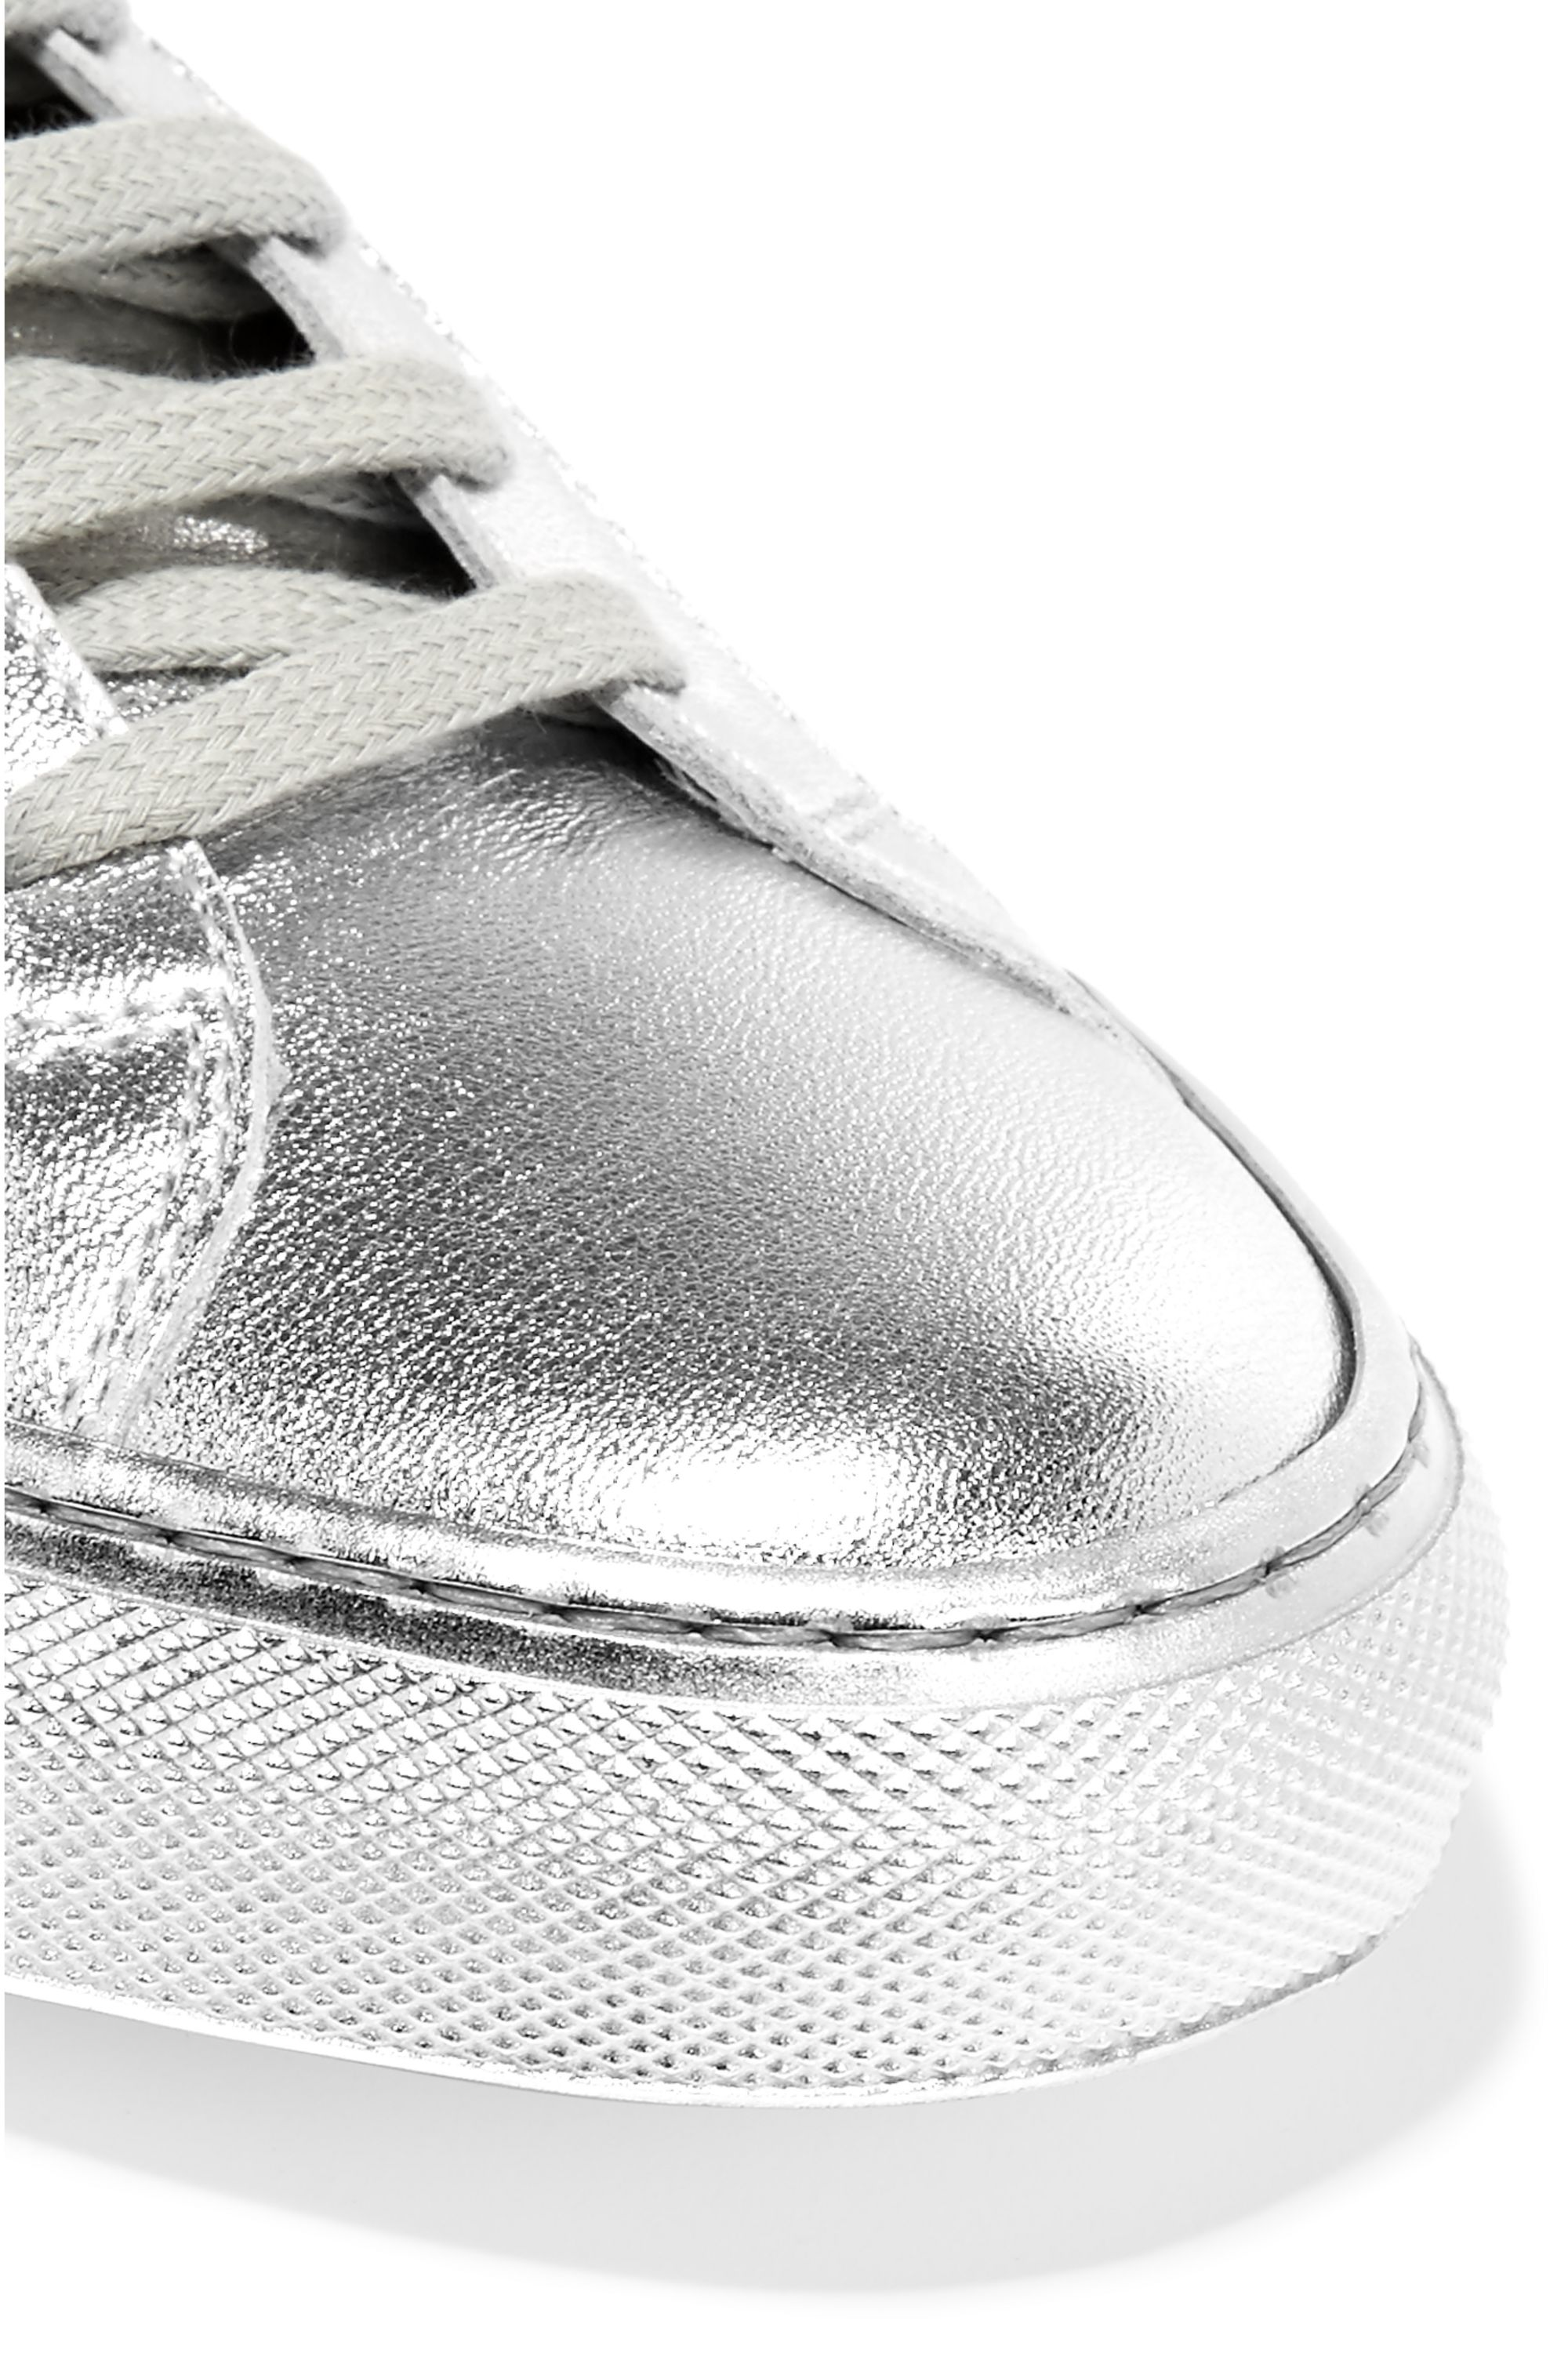 Common Projects Original Achilles metallic leather sneakers